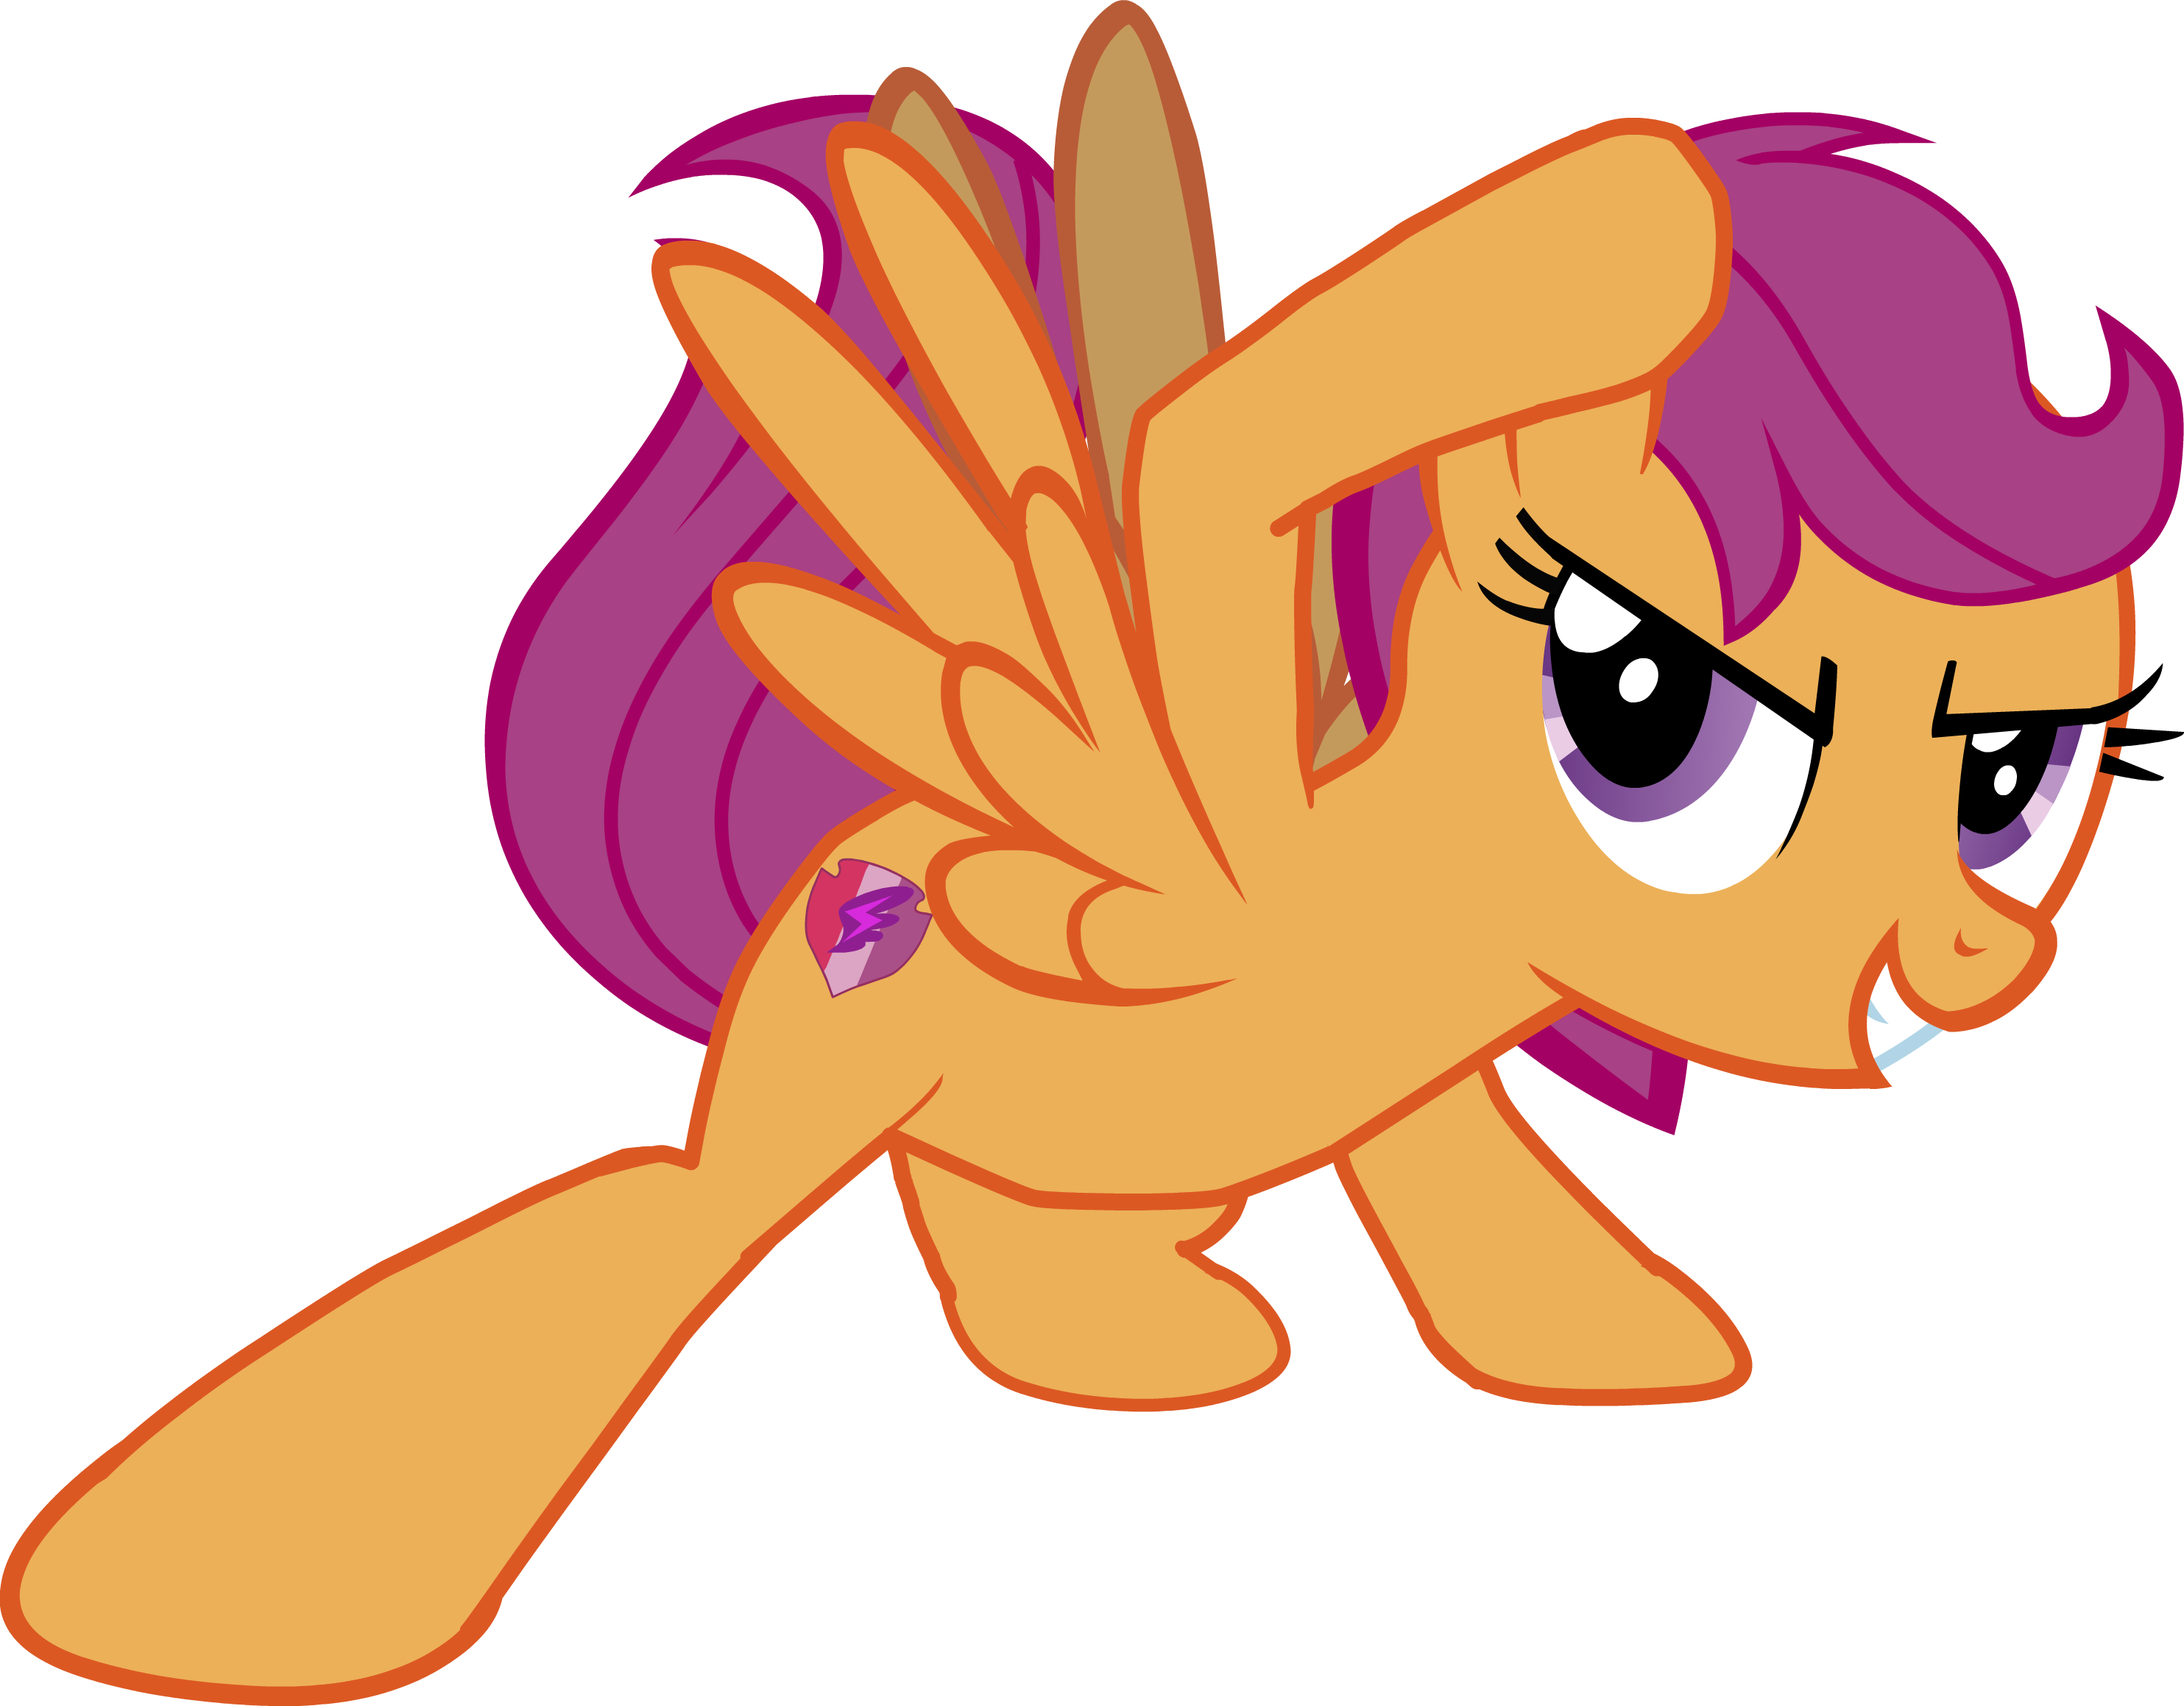 Scootaloo Sliding Cutie Mark Crusaders Mlp Mylittlepony Mlpsliding Mlp2015 Mlp2016 Mlp My Little Pony My Lil Pony My Little Pony Friendship Good vector, the only thing i can really say about is it would look so much better on a white background. pinterest